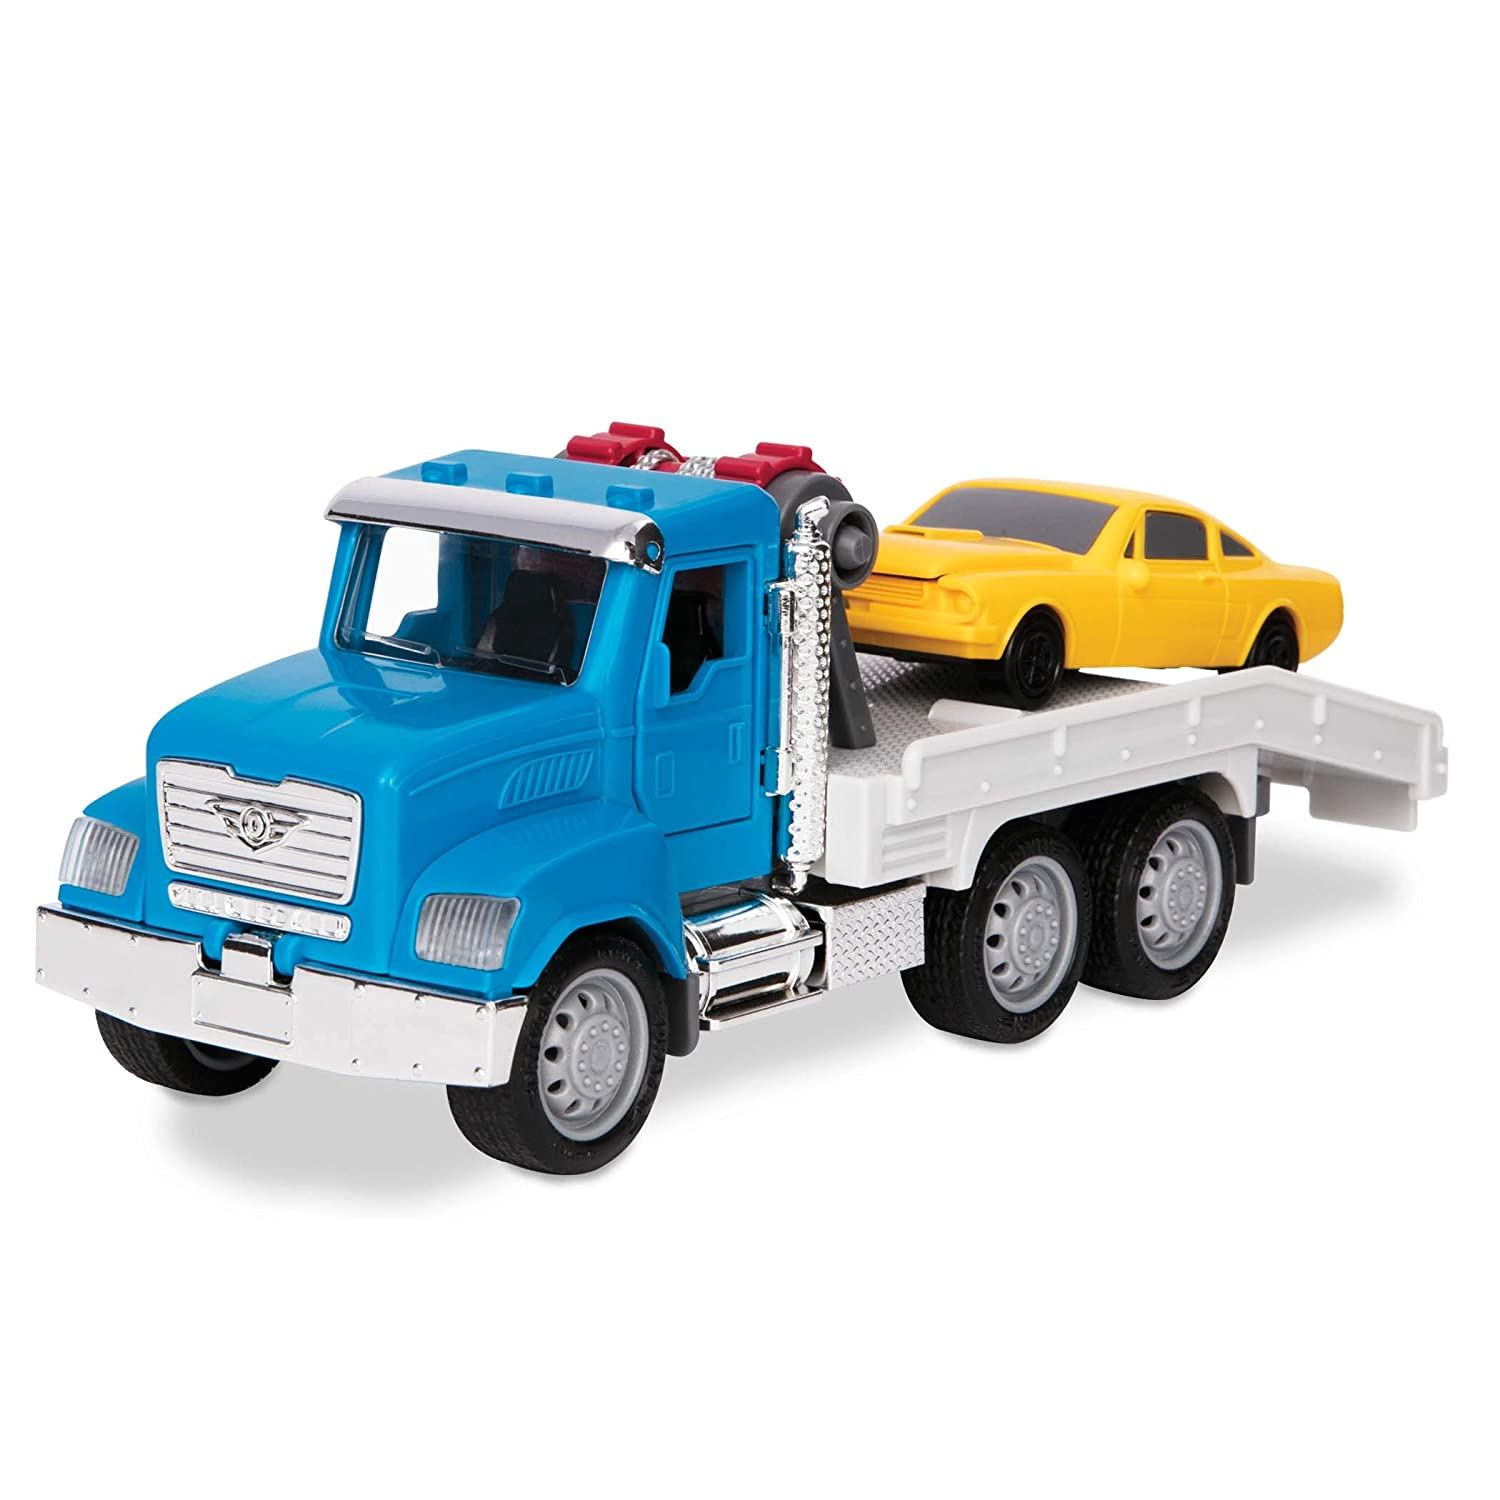 Top 9 Best Toy Tow Trucks Reviews in 2020 7